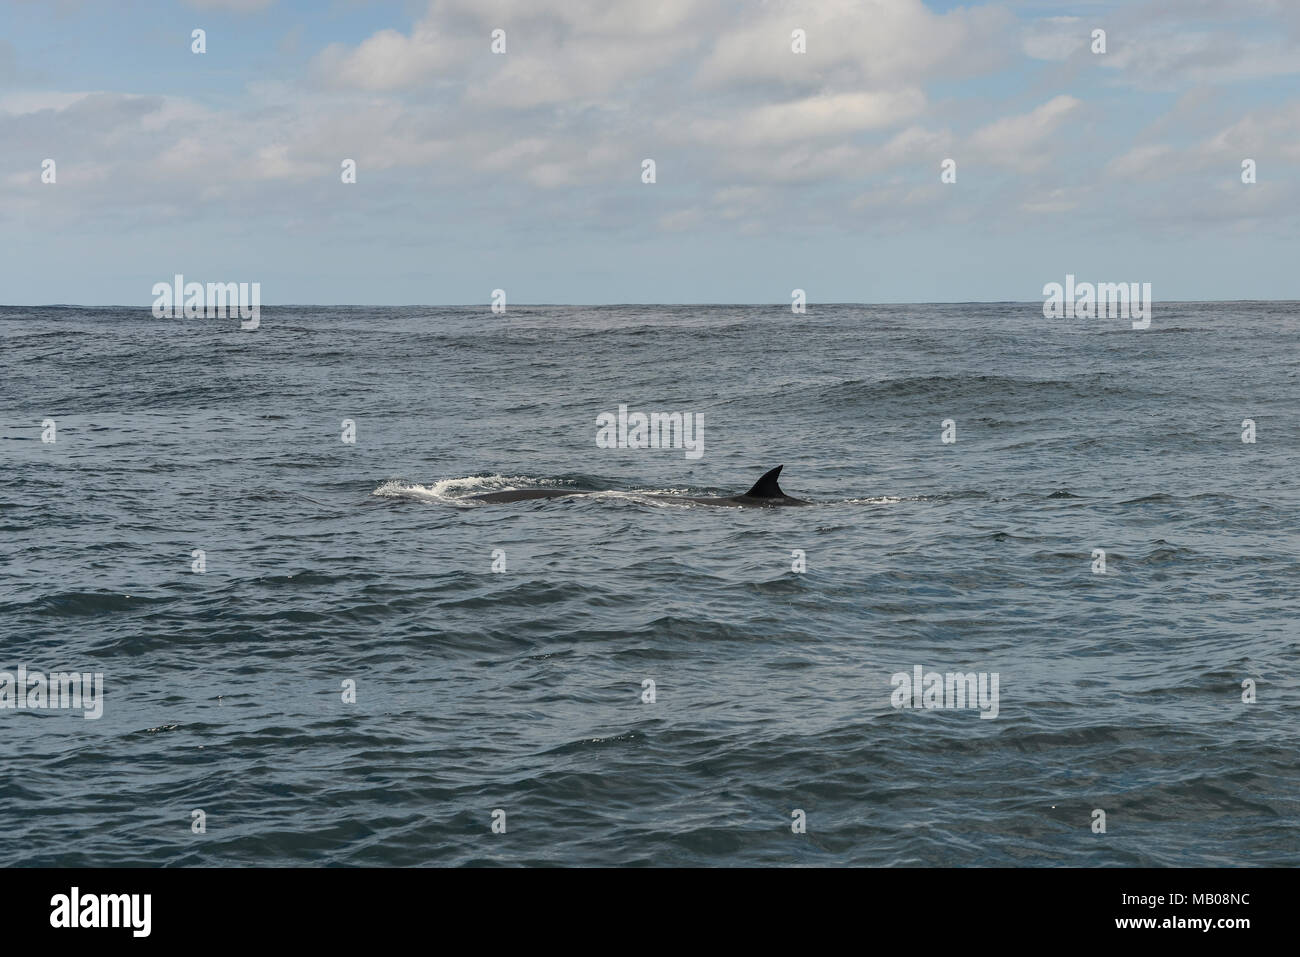 A Bryde's whale (Balaenoptera edeni) in the Indian Ocean off the Coast of Plattenberg Bay, South Africa - Stock Image